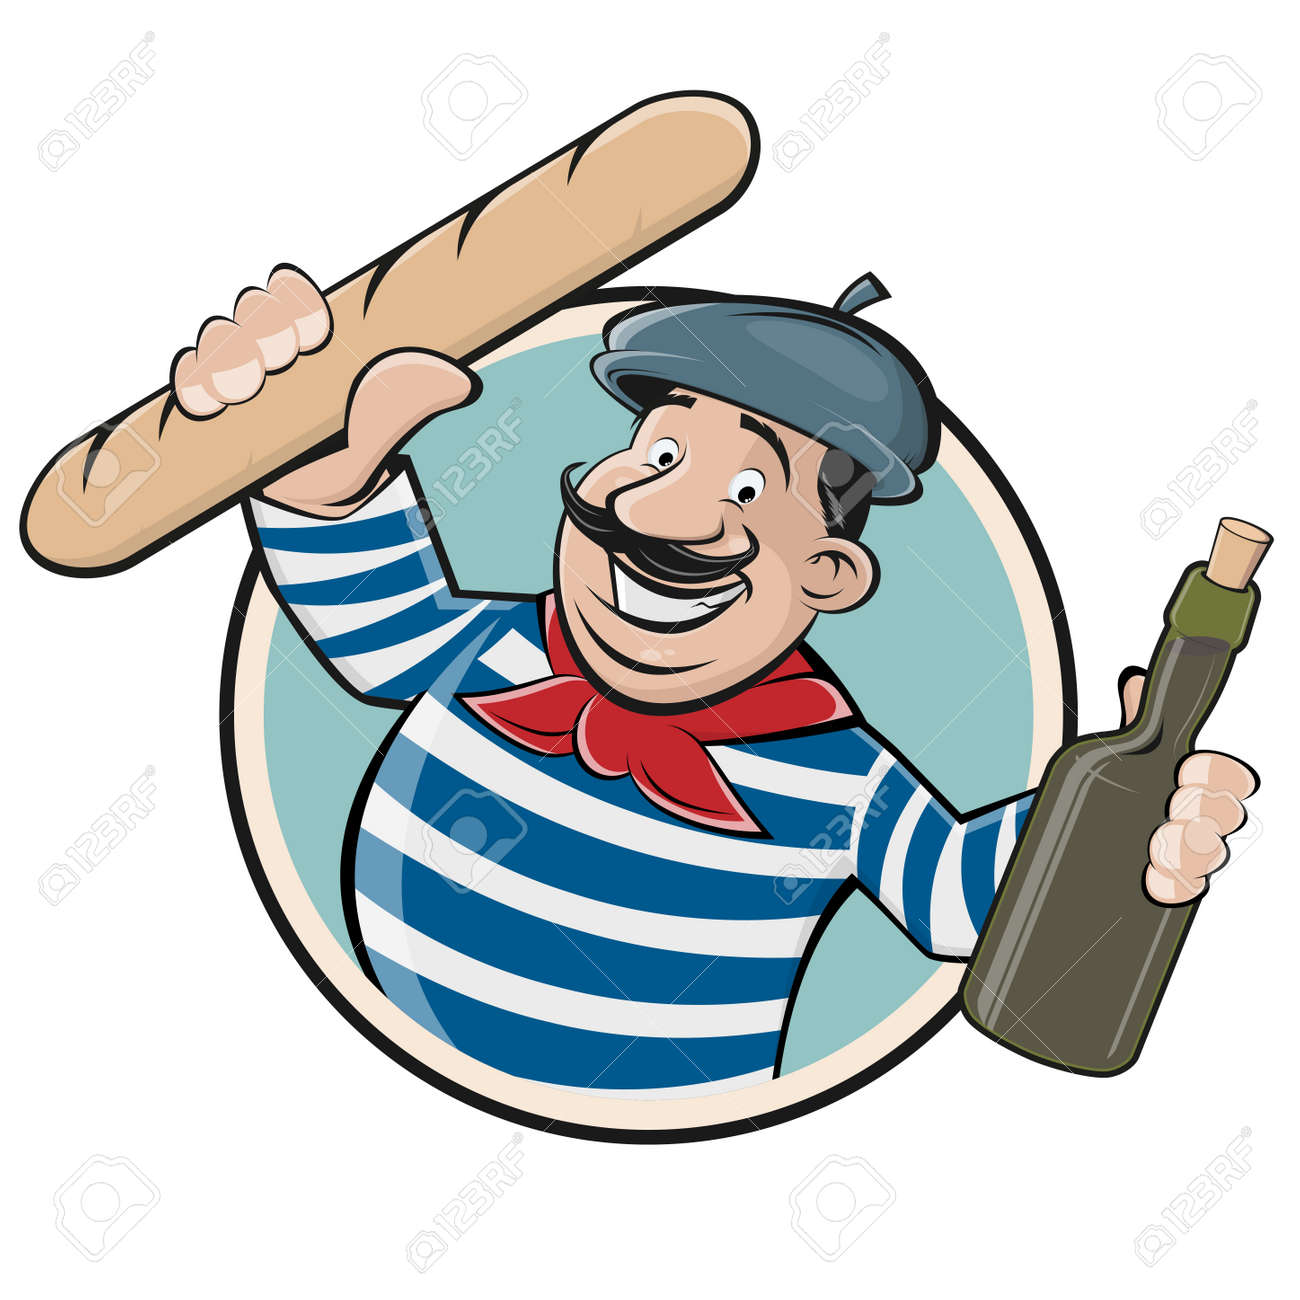 funny clip art of a french man with baguette and wine royalty free rh 123rf com French Artist Clip Art French Country Clip Art